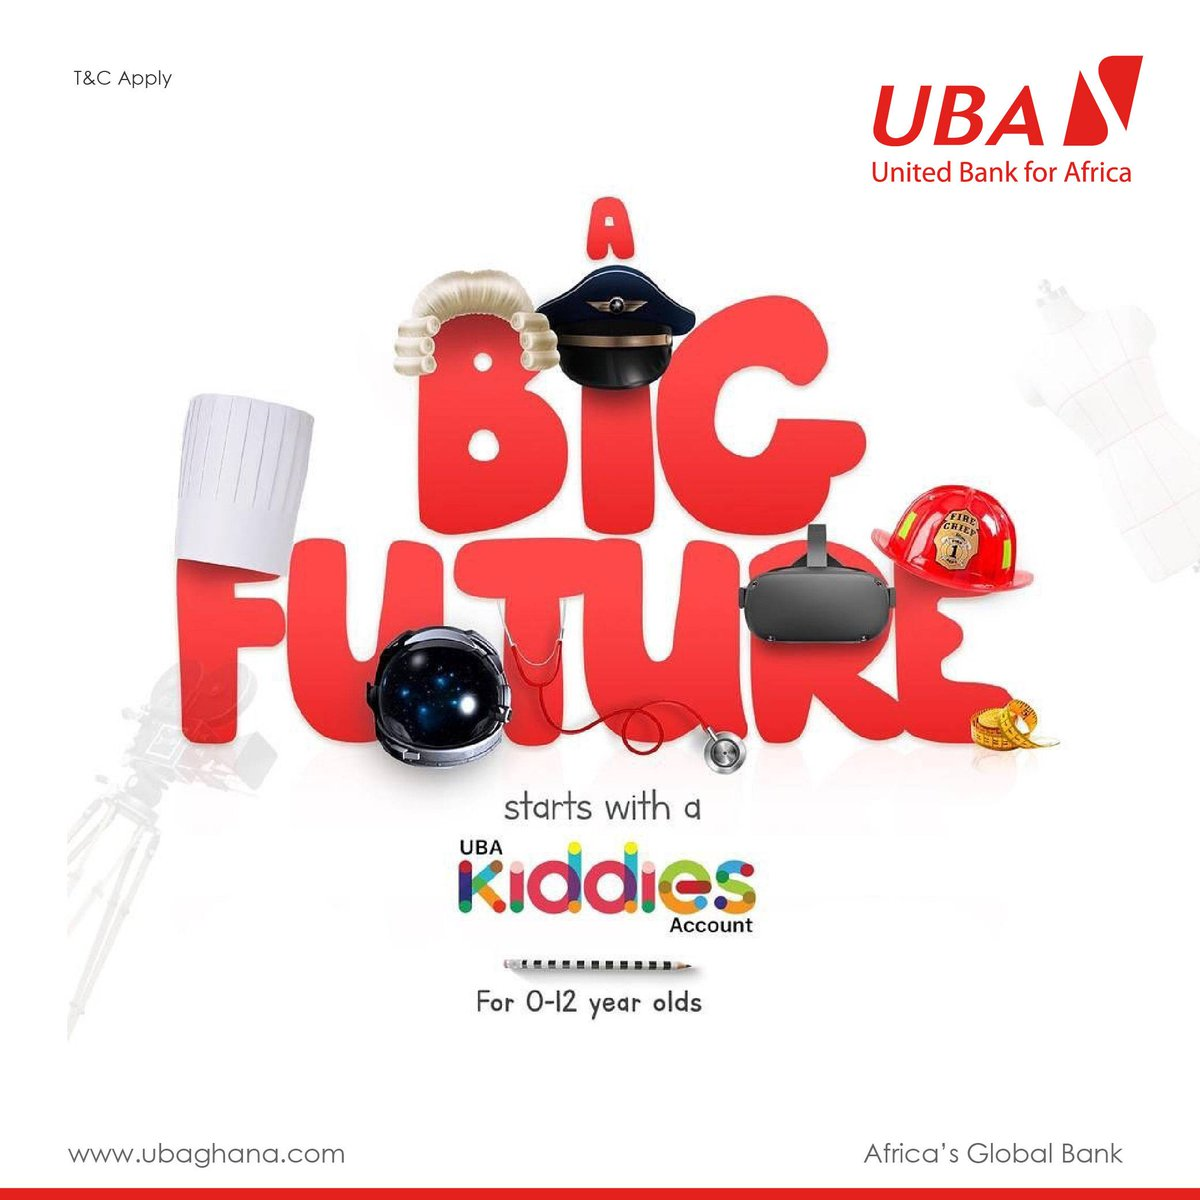 Secure a future for your kids. Start by creating a #UBAKiddiesAccount for them.  Click here to learn more: https://t.co/keWdUAPiDU. #StaySafe #LeoMagic #AfricasGlobalBank 🌍🇬🇭 https://t.co/GvBXP5DTJN